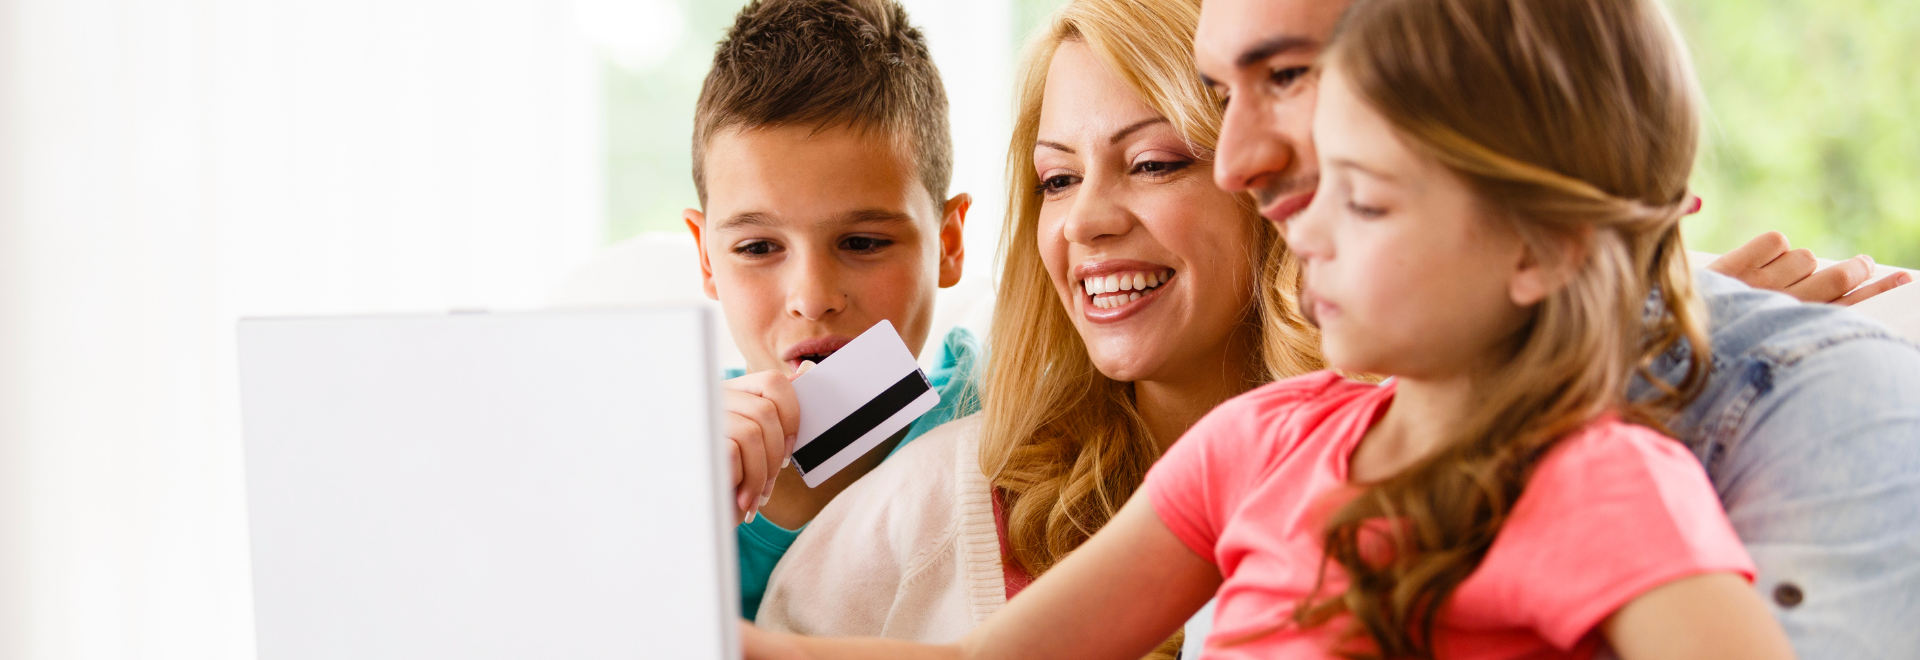 family shopping online with a prepaid card or debit card or credit card